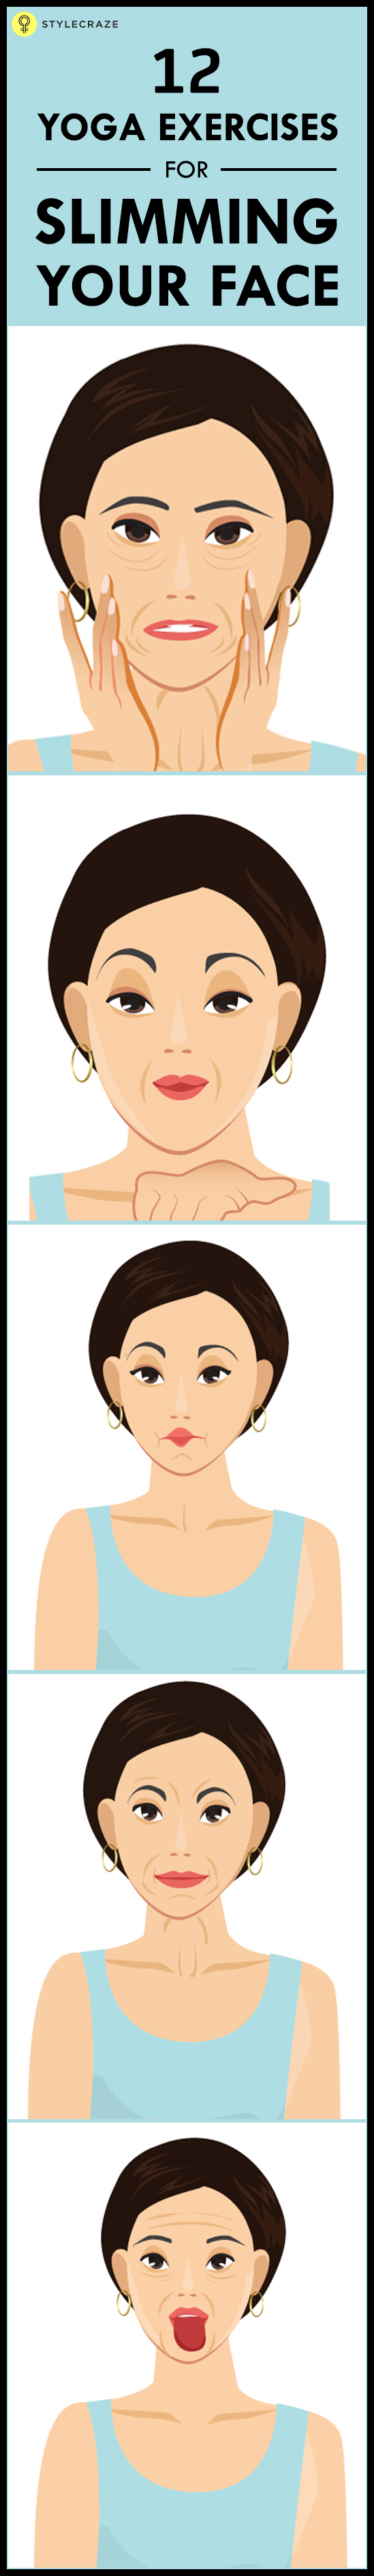 12 yoga excerises fo slimming your face www.stylecraze.comarticles10-yoga-exercises-for-slimming-your-face